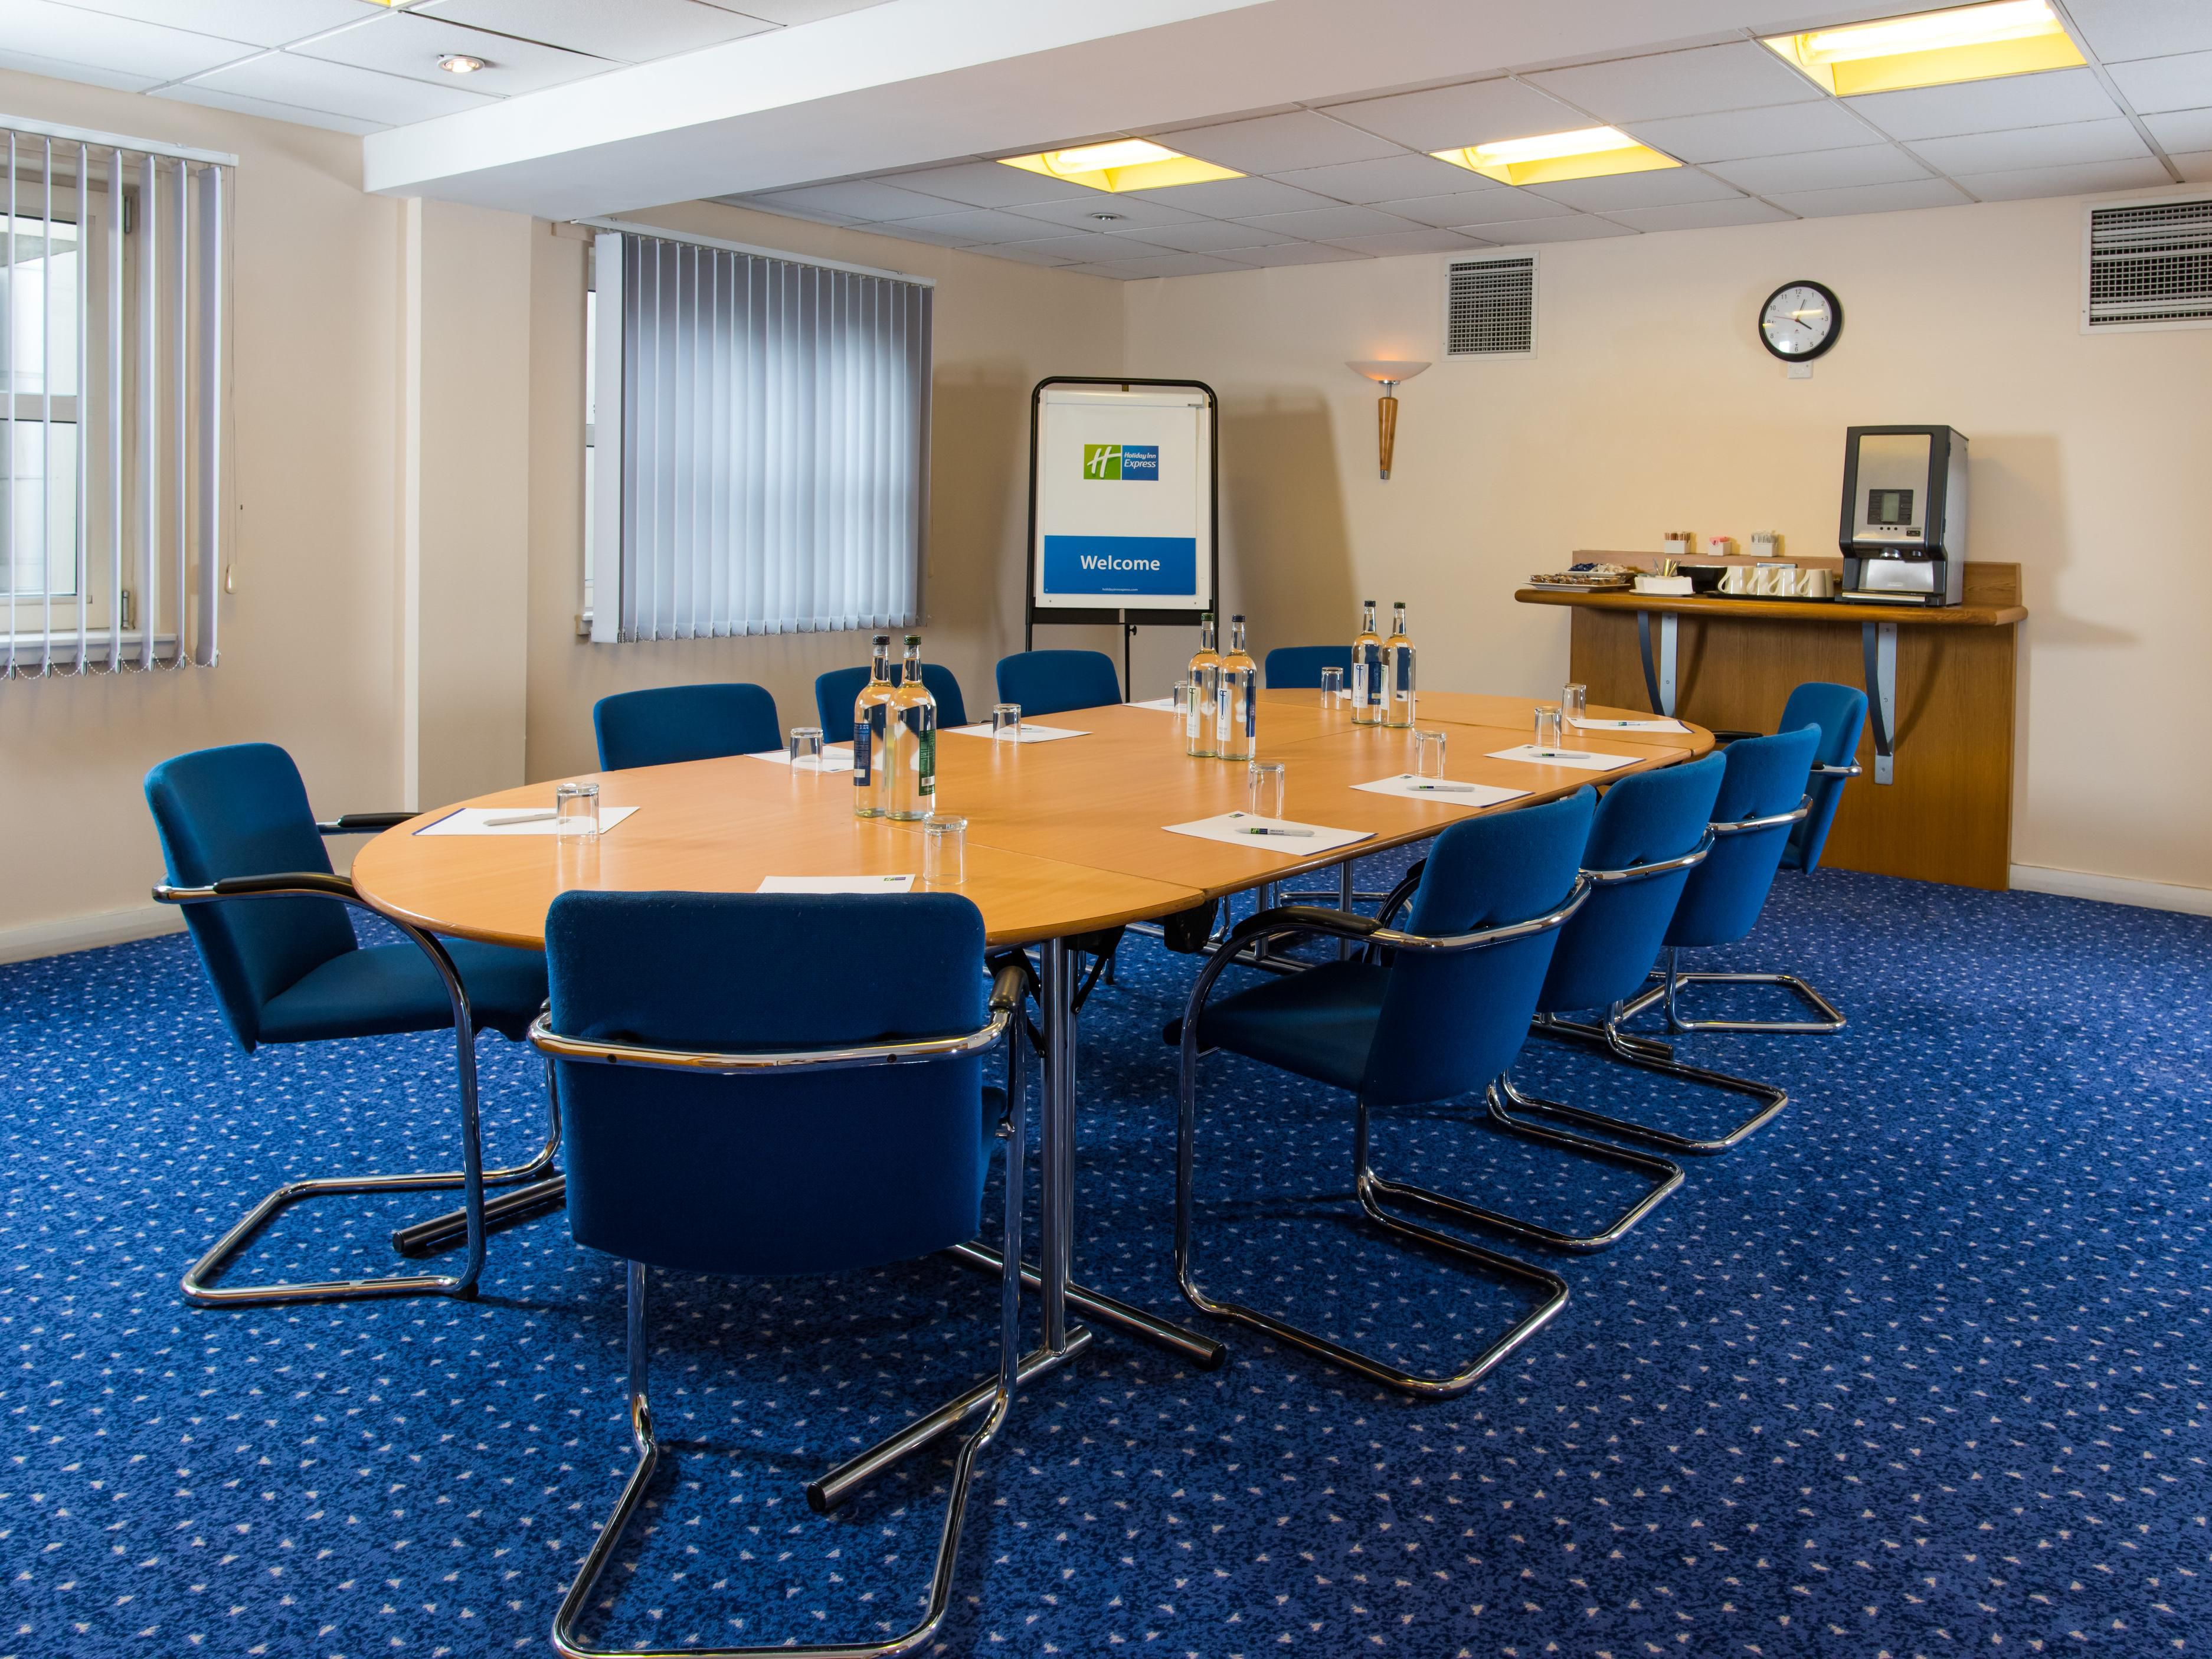 Our meetings rooms boast air-conditioning and natural daylight